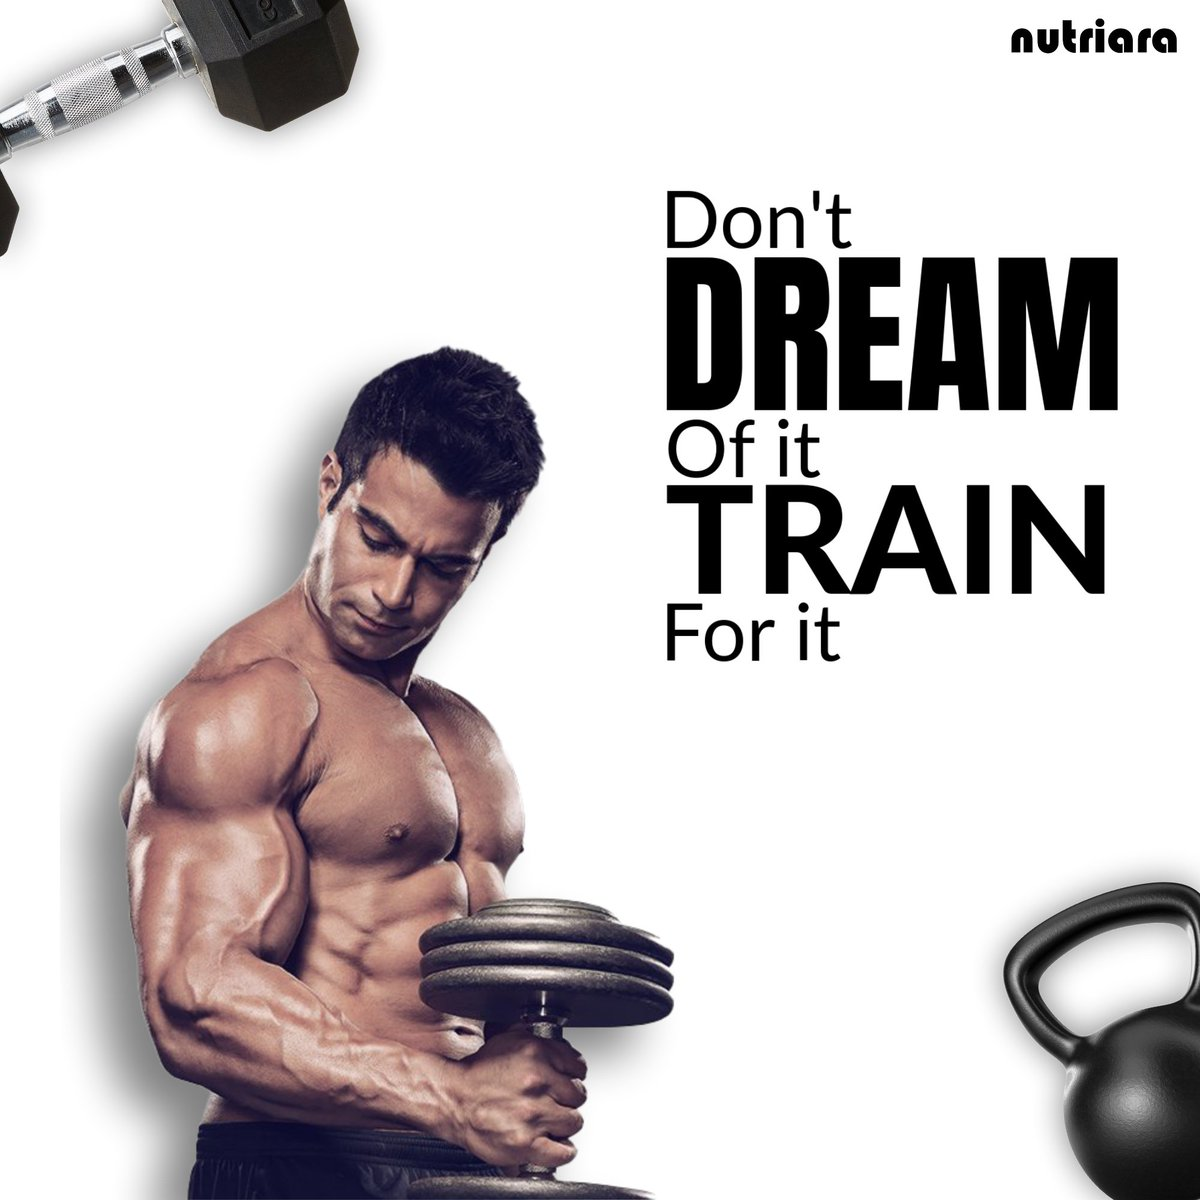 Don't just dream of it, train for it. . #nutriara #muscle #shredded #abs #gymlife #aesthetics #physique #fitnessmodel #bodybuilder #gains #strong #dedication #beastmode #cardio #body #fitnessmotivation #muscles #exercise #flex #strength #trainhardpic.twitter.com/soJ0cPgFqb